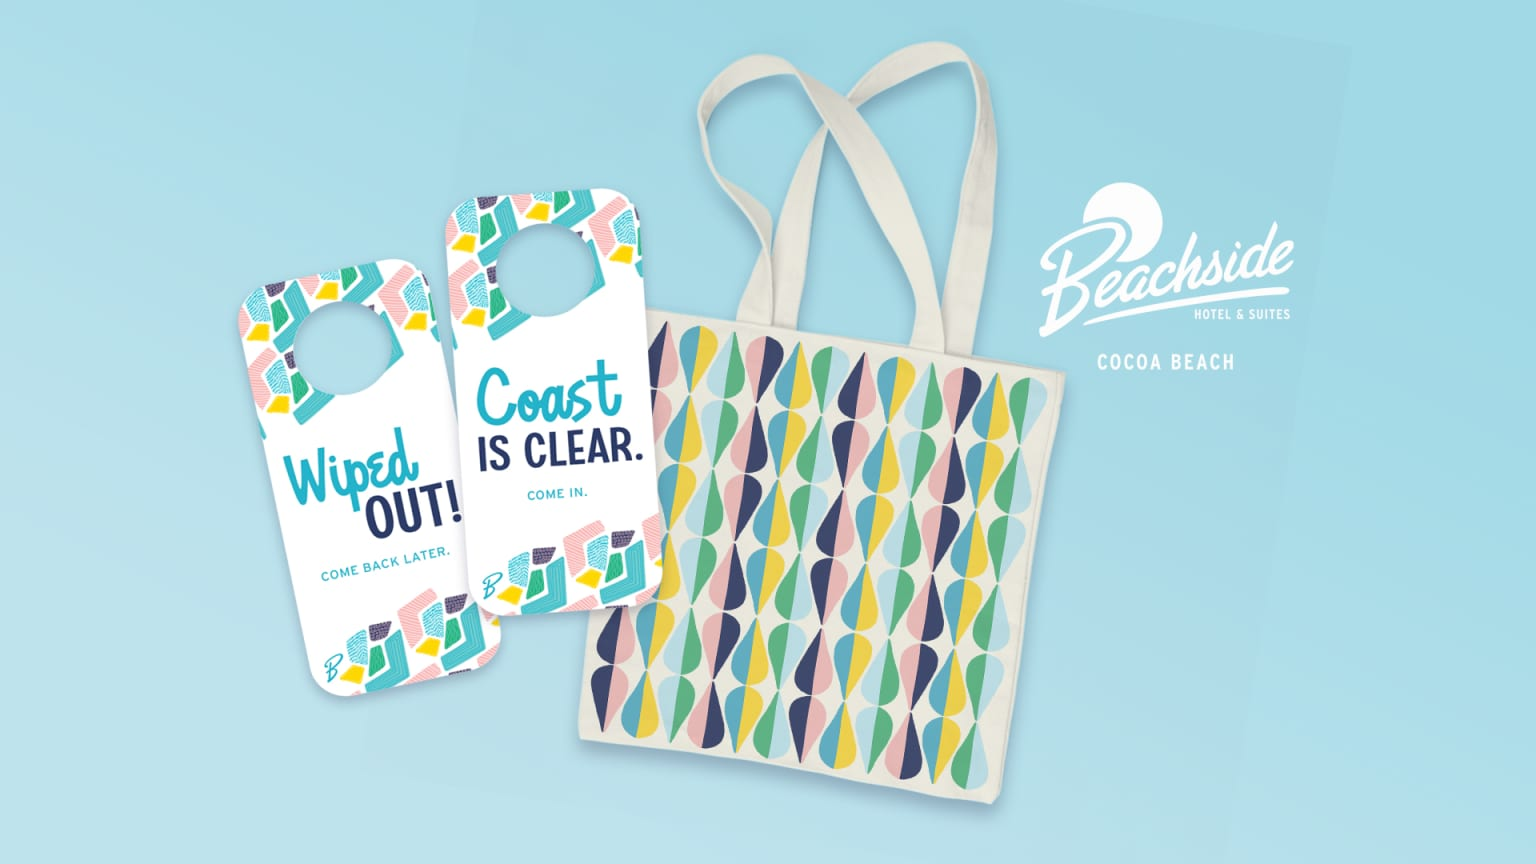 Beachside Hotel & Suites: Branding